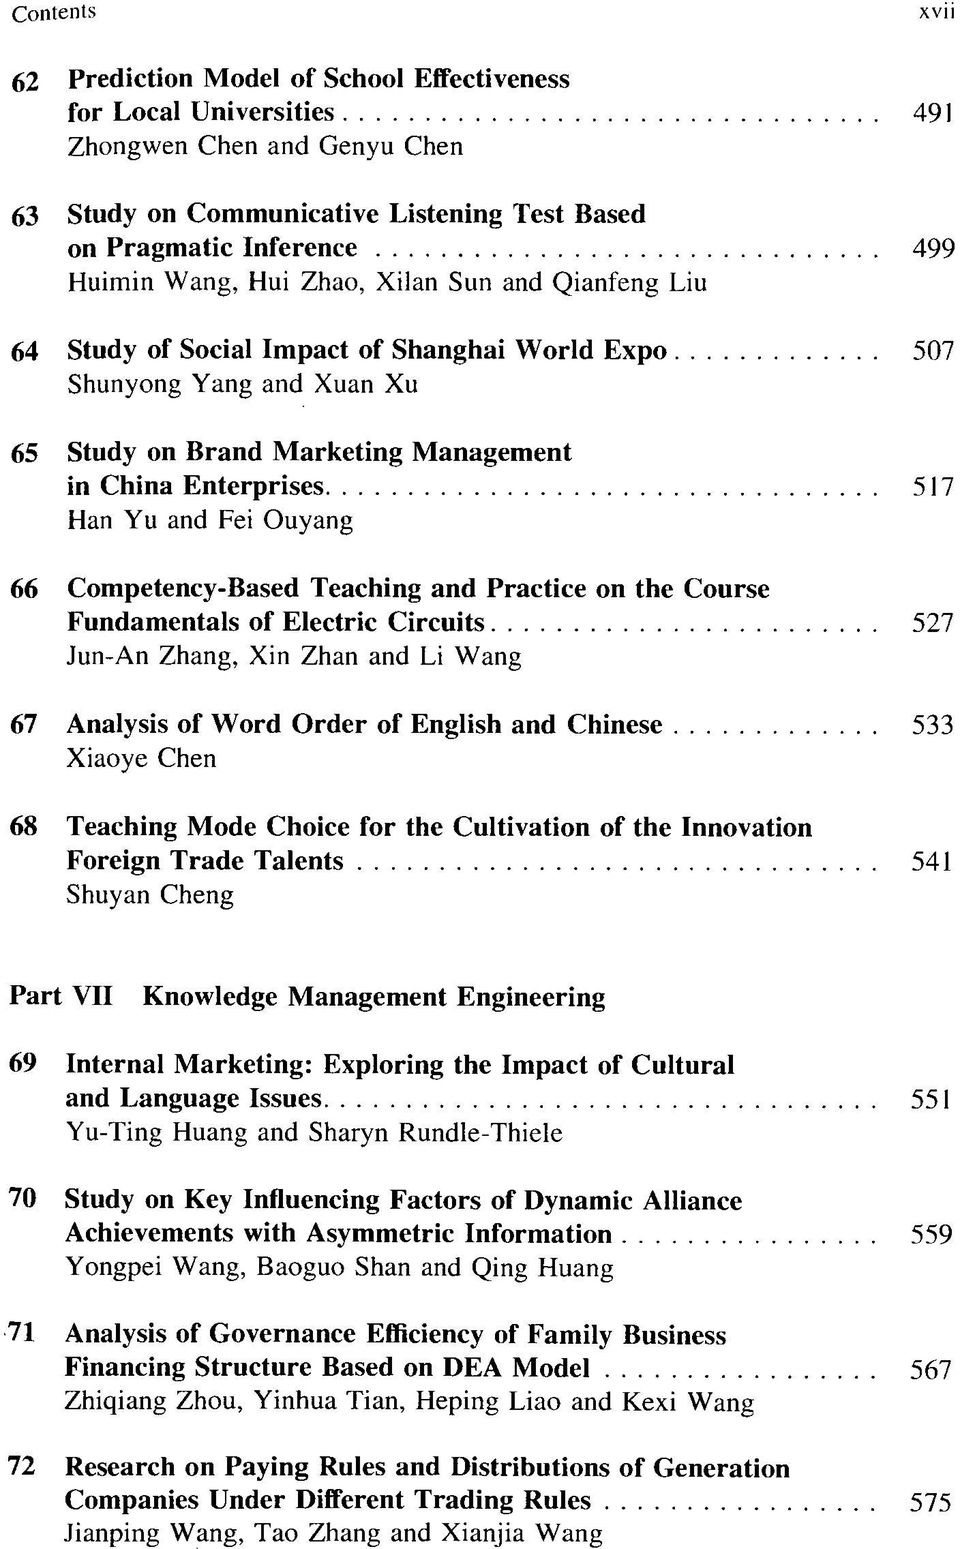 Ouyang 66 Competency-Based Teaching and Practice on the Course Fundamentals of Electric Circuits 527 Jun-An Zhang, Xin Zhan and Li Wang 67 Analysis of Word Order of English and Chinese 533 Xiaoye